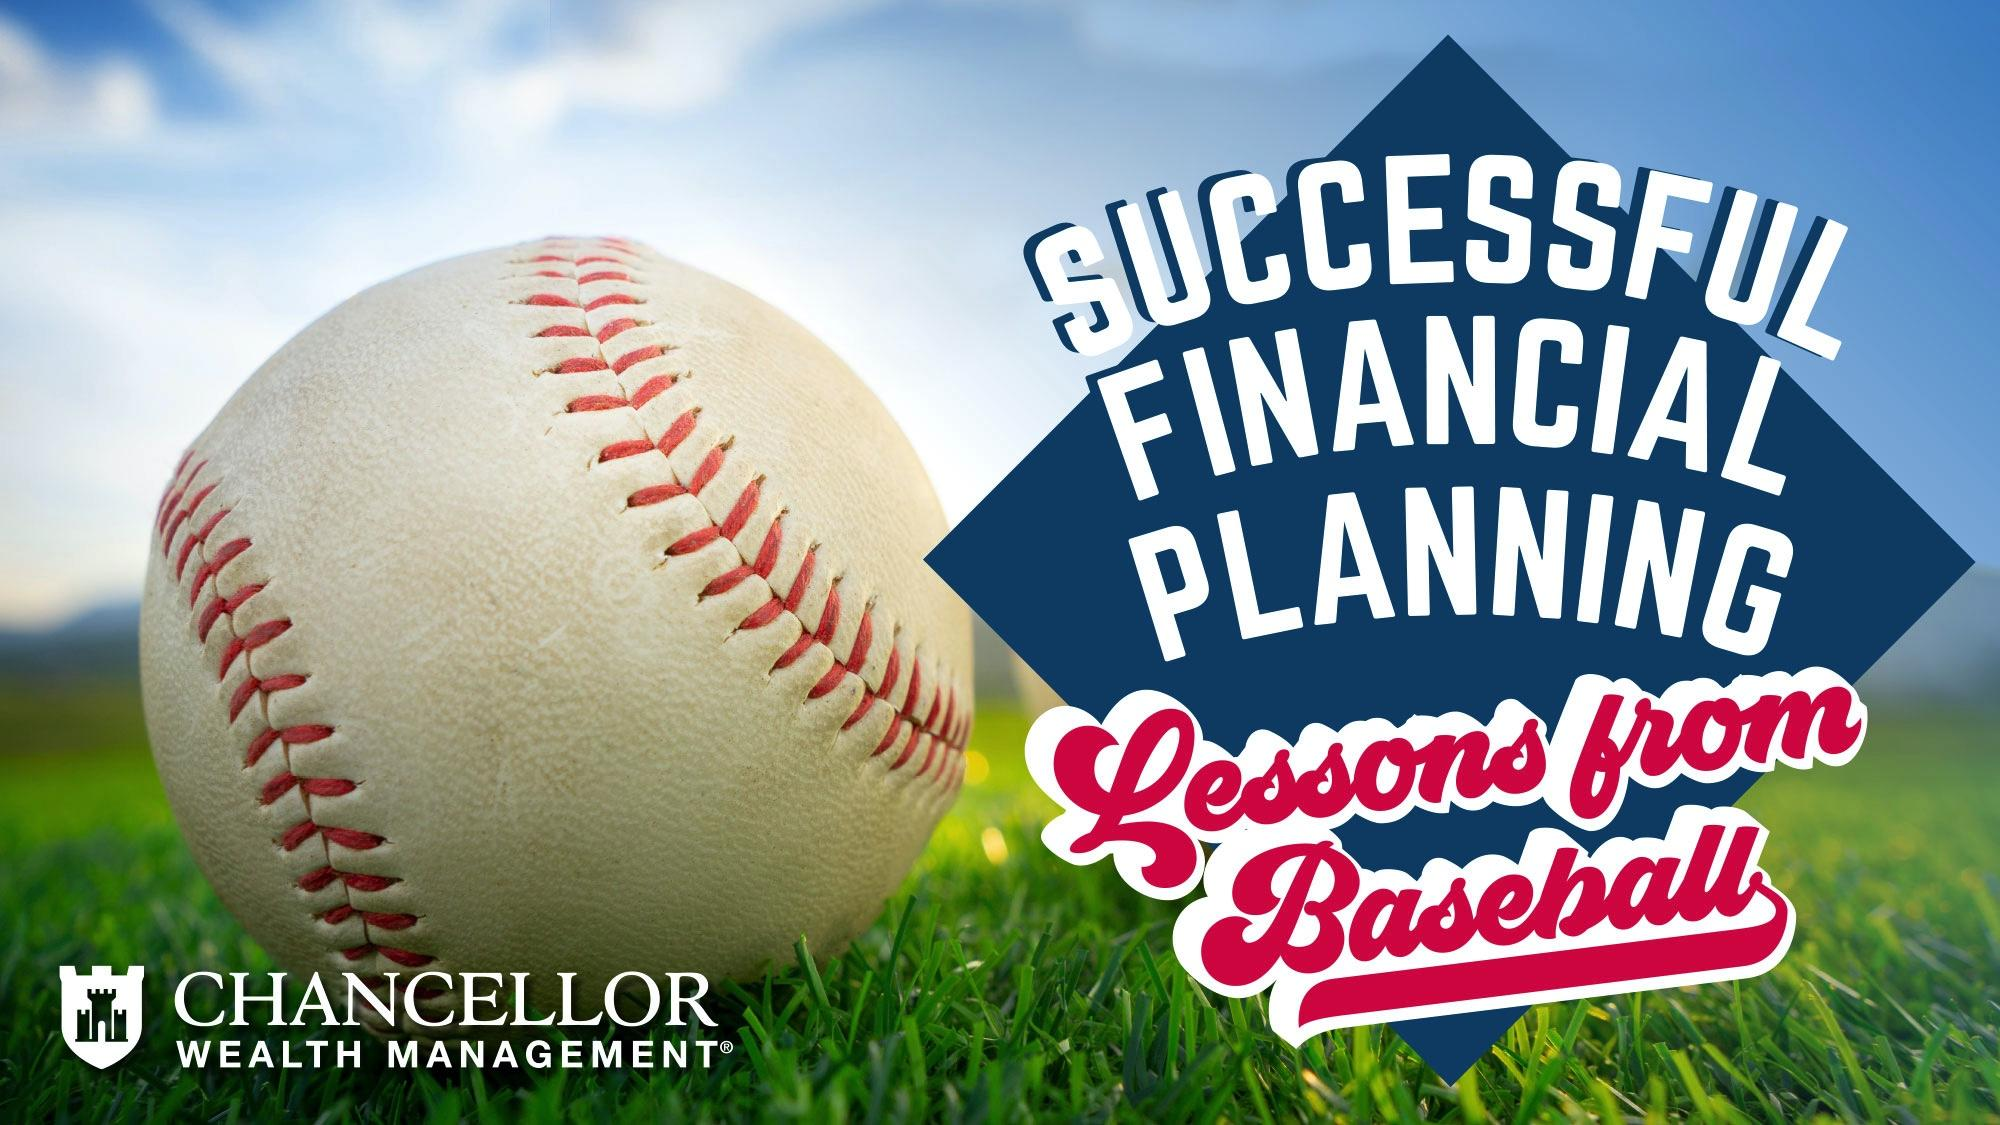 Successful Financial Planning: 4 Lessons from Baseball Thumbnail